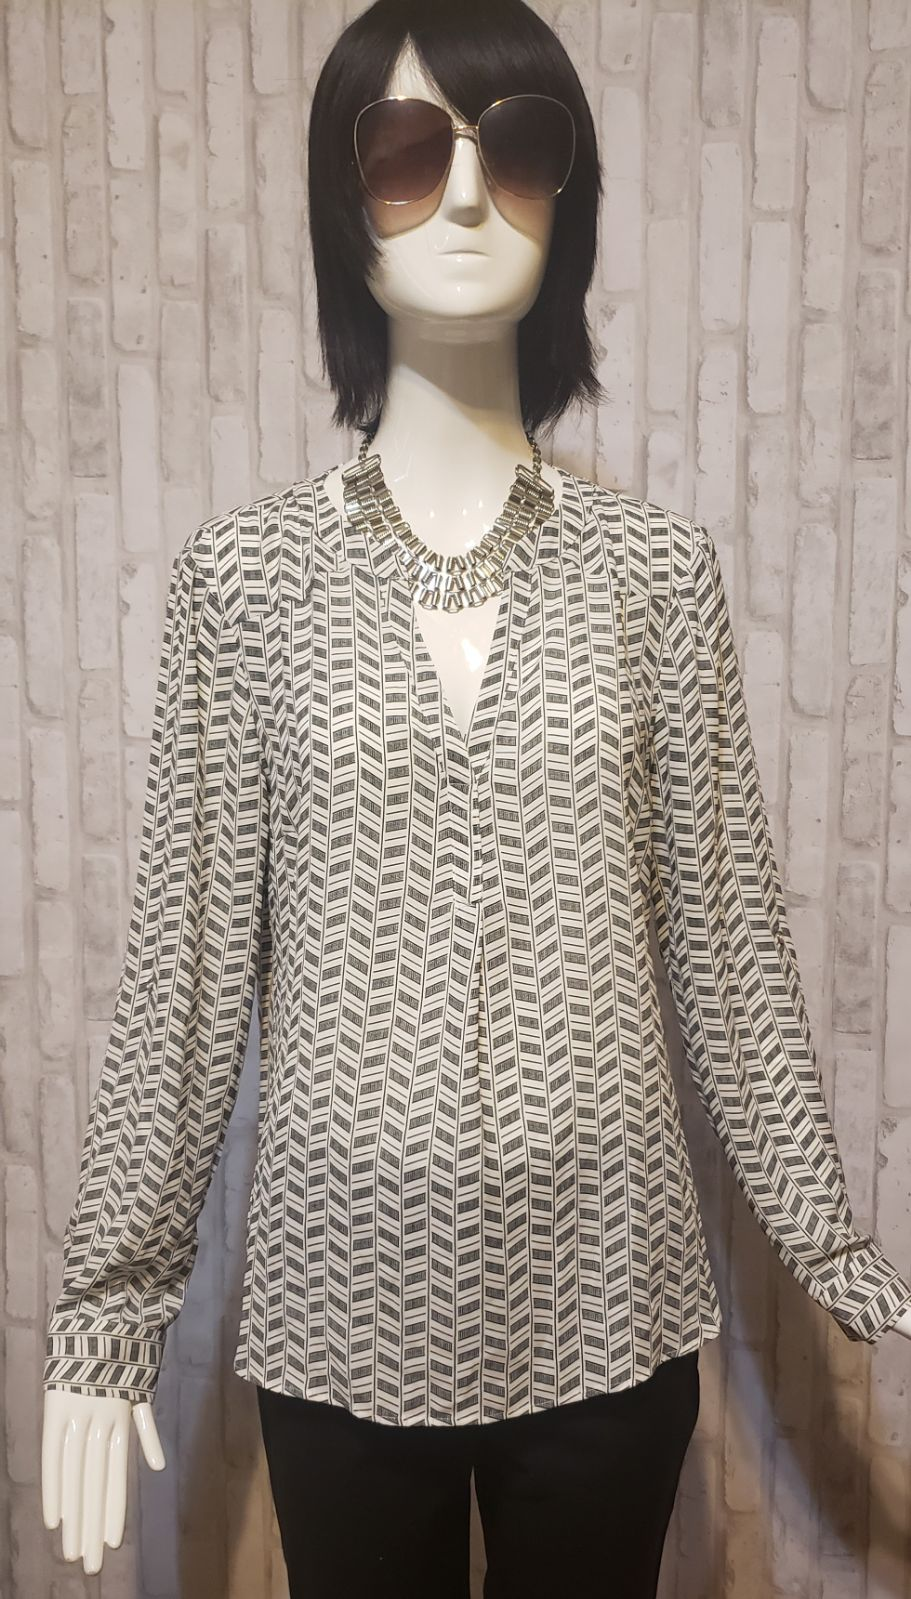 Candie's Black & White Blouse size Large